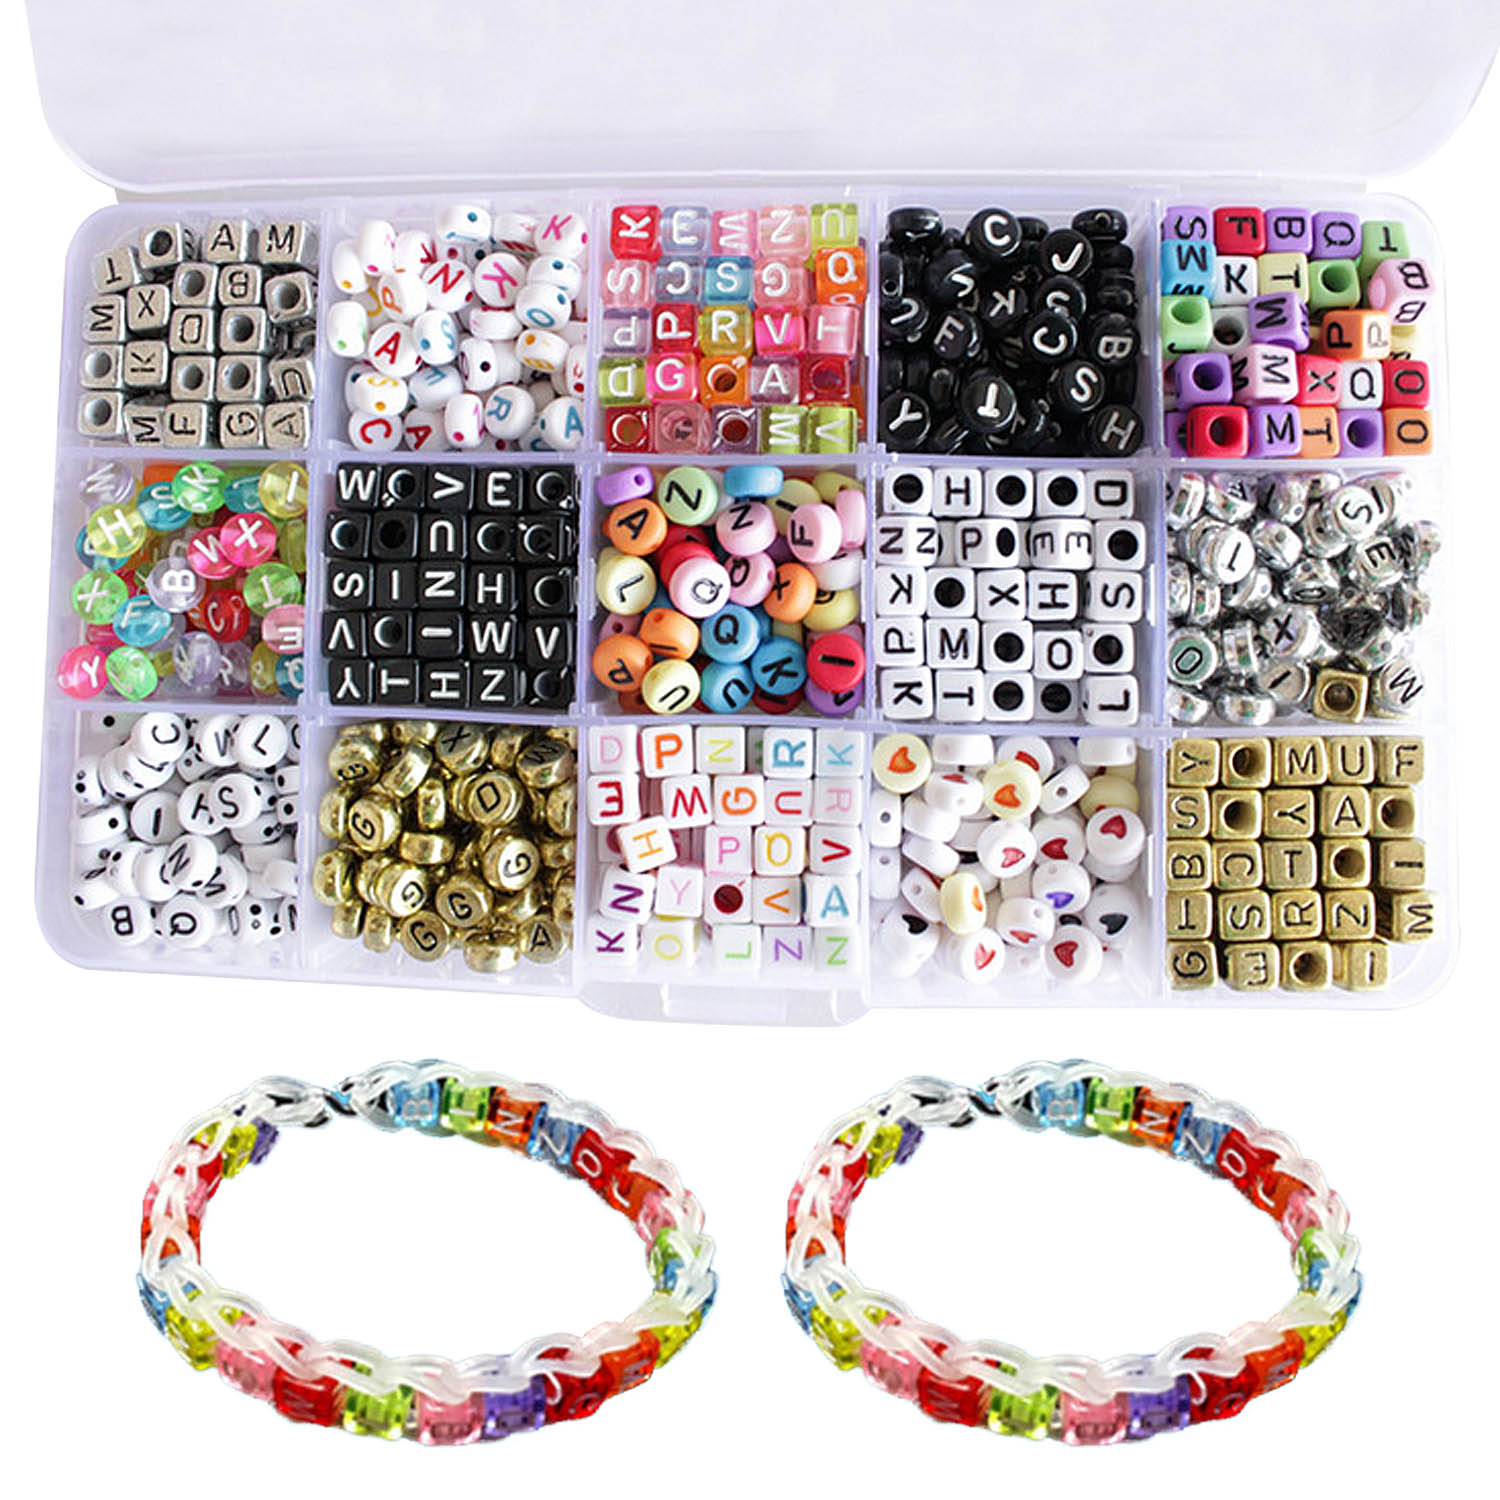 1100 Pcs 15 Styles Round Square Acrylic Mixed Color Letter Alphabet Loose Beads For DIY Jewelry & Craft Making Accessories Toys